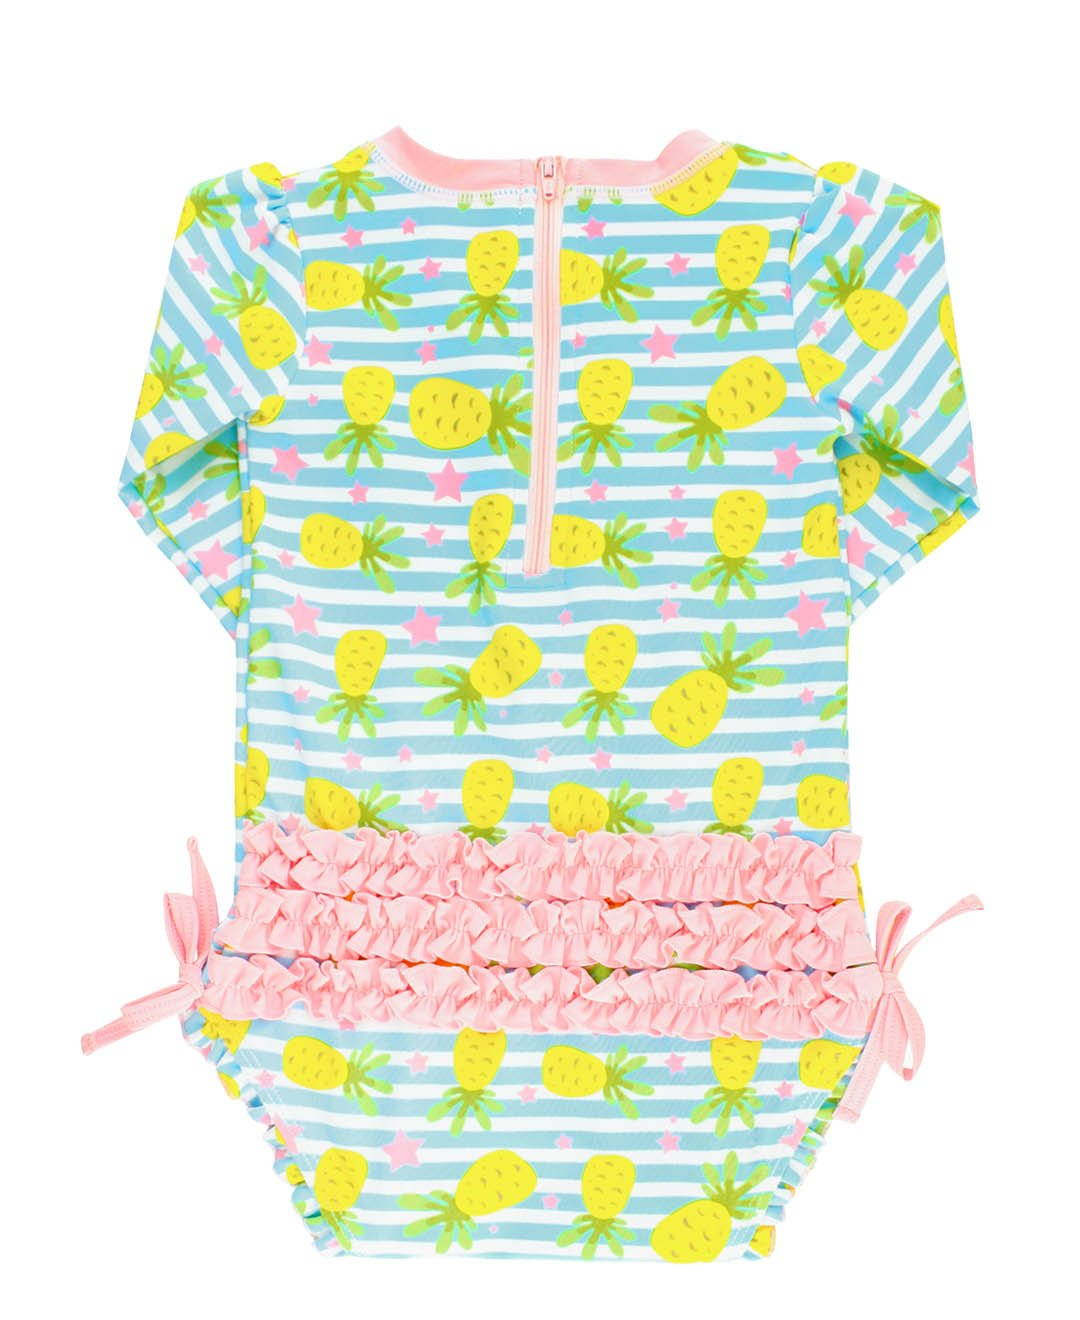 1cee21172 RuffleButts Little Girls Long Sleeve One Piece Swimsuit - Pineapple  Paradise with UPF 50+ Sun Protection - 2T - RGSBL2T-1PPP < Rash Guard  Shirts < Clothing, ...